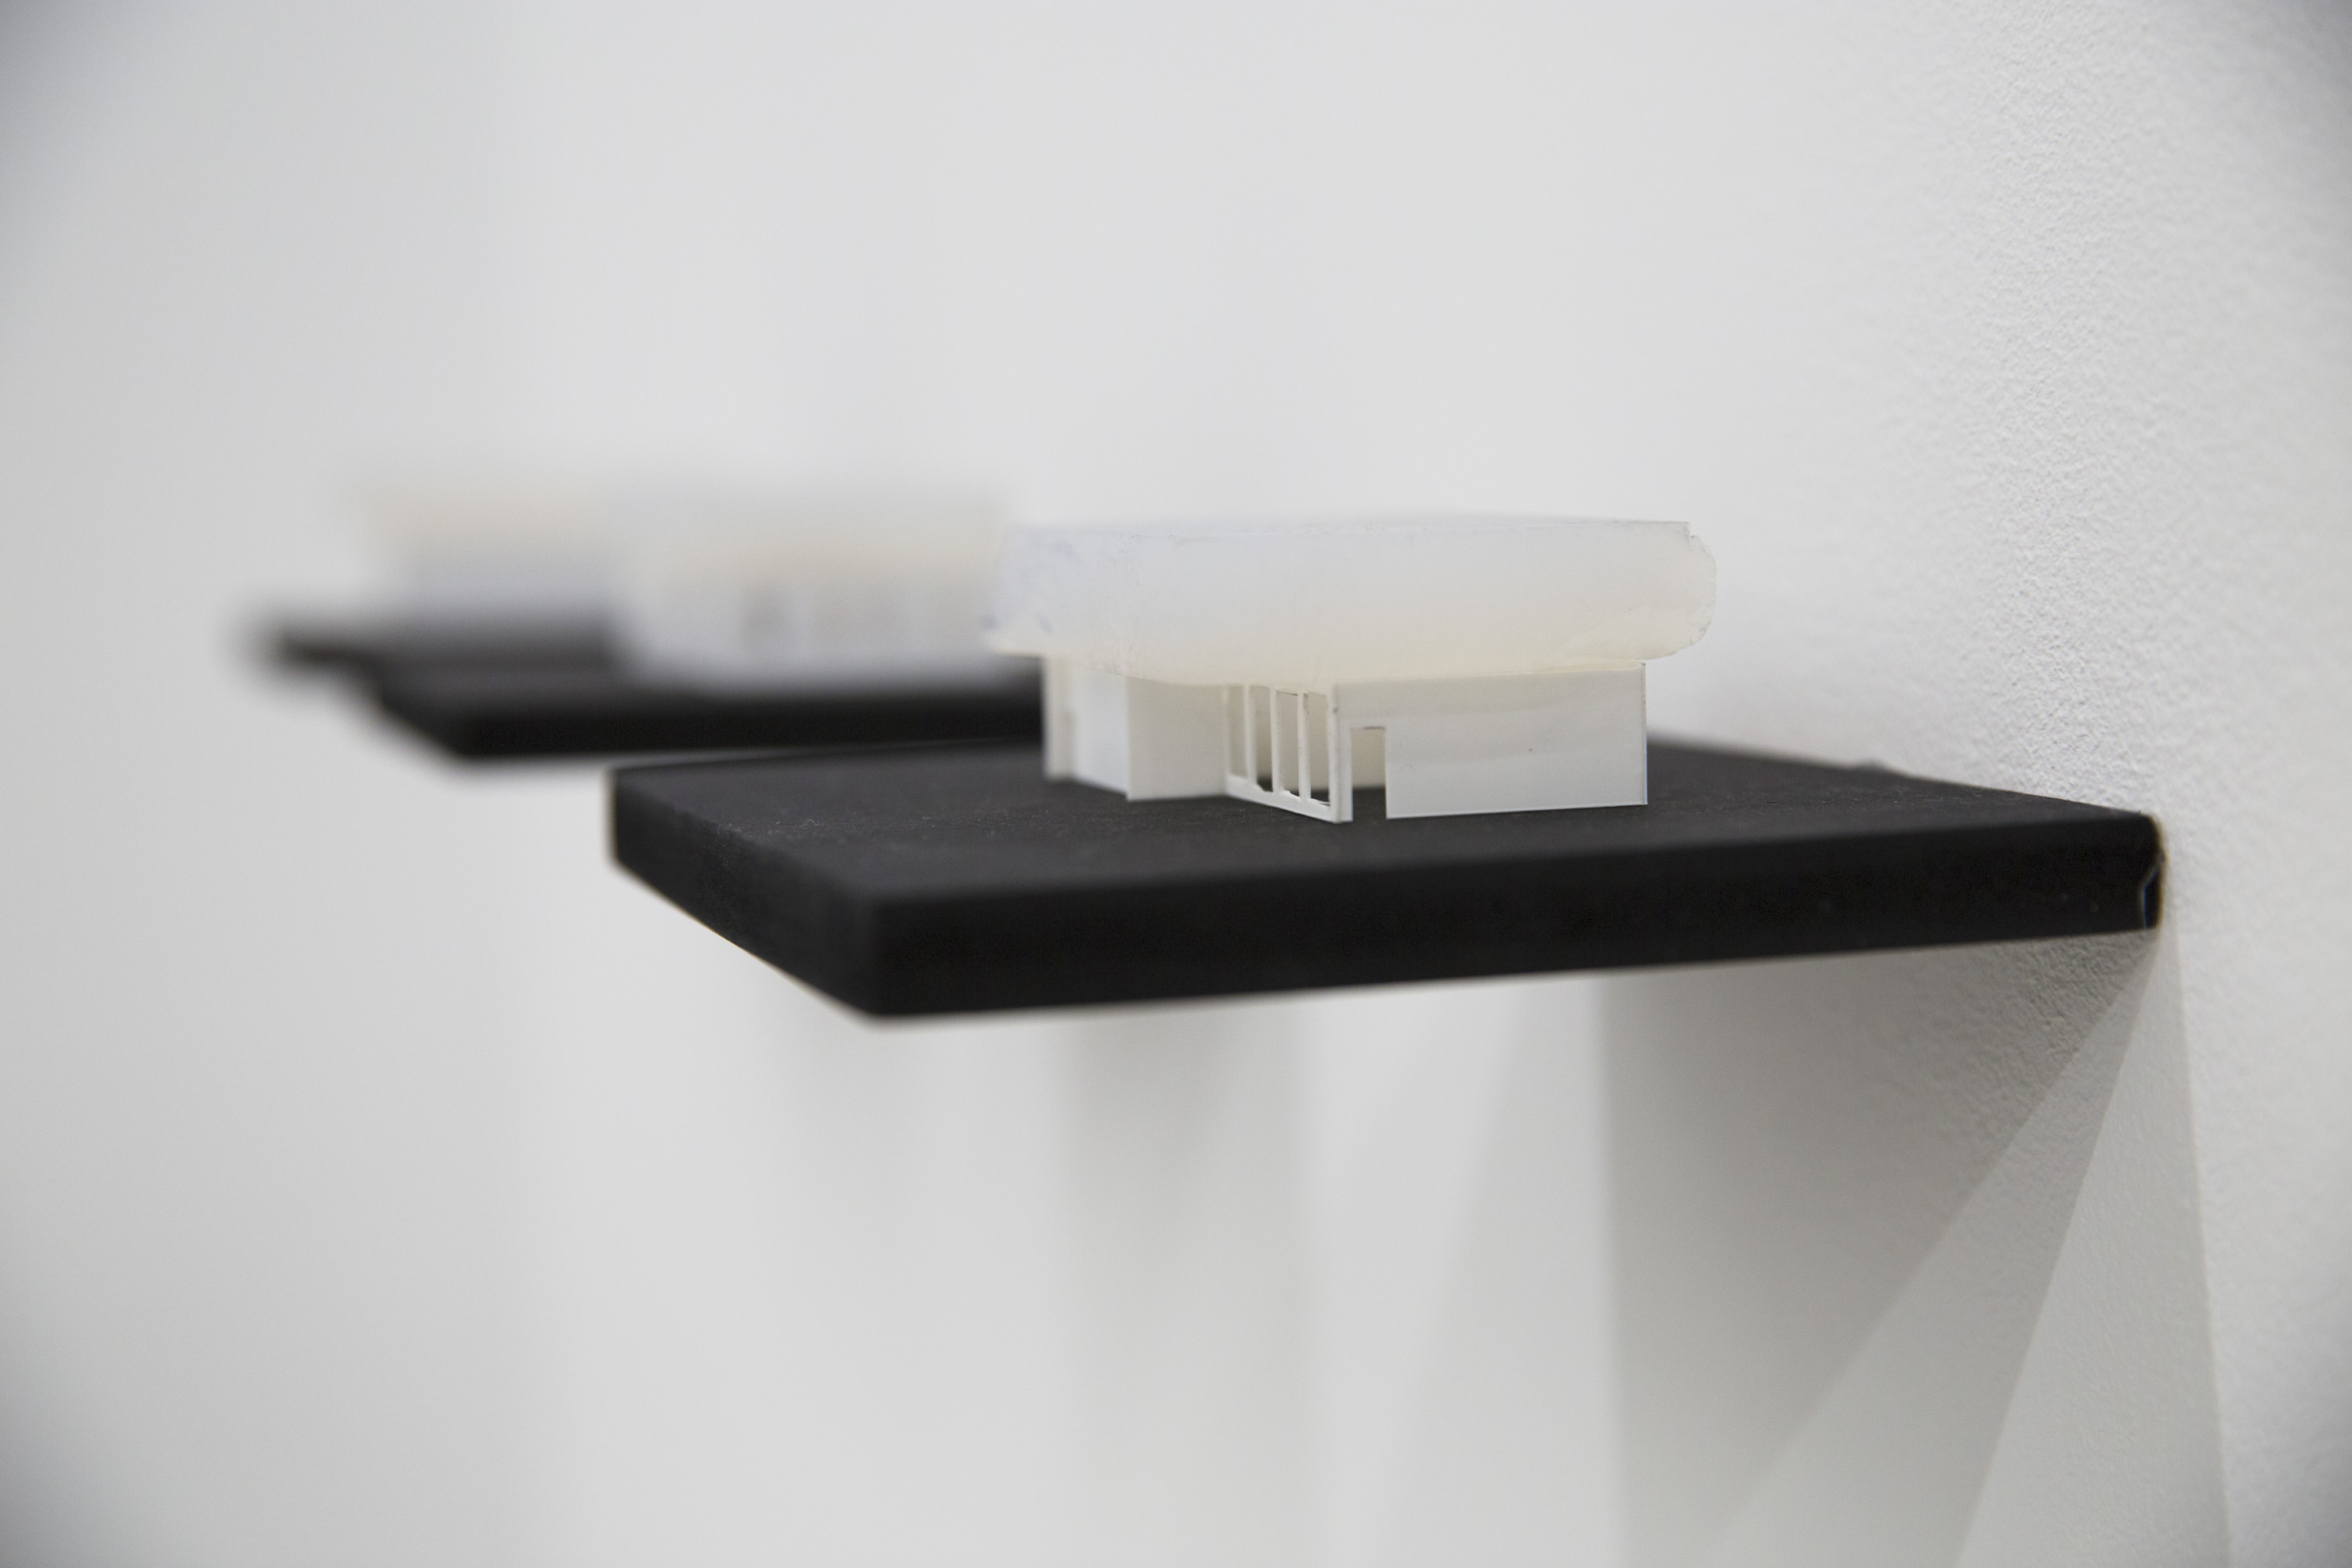 Berndnaut Smilde, Cumulus Series, 2012-2014, aerogel and plastic model, 3.5 x 7.5 x 7.5 cm each